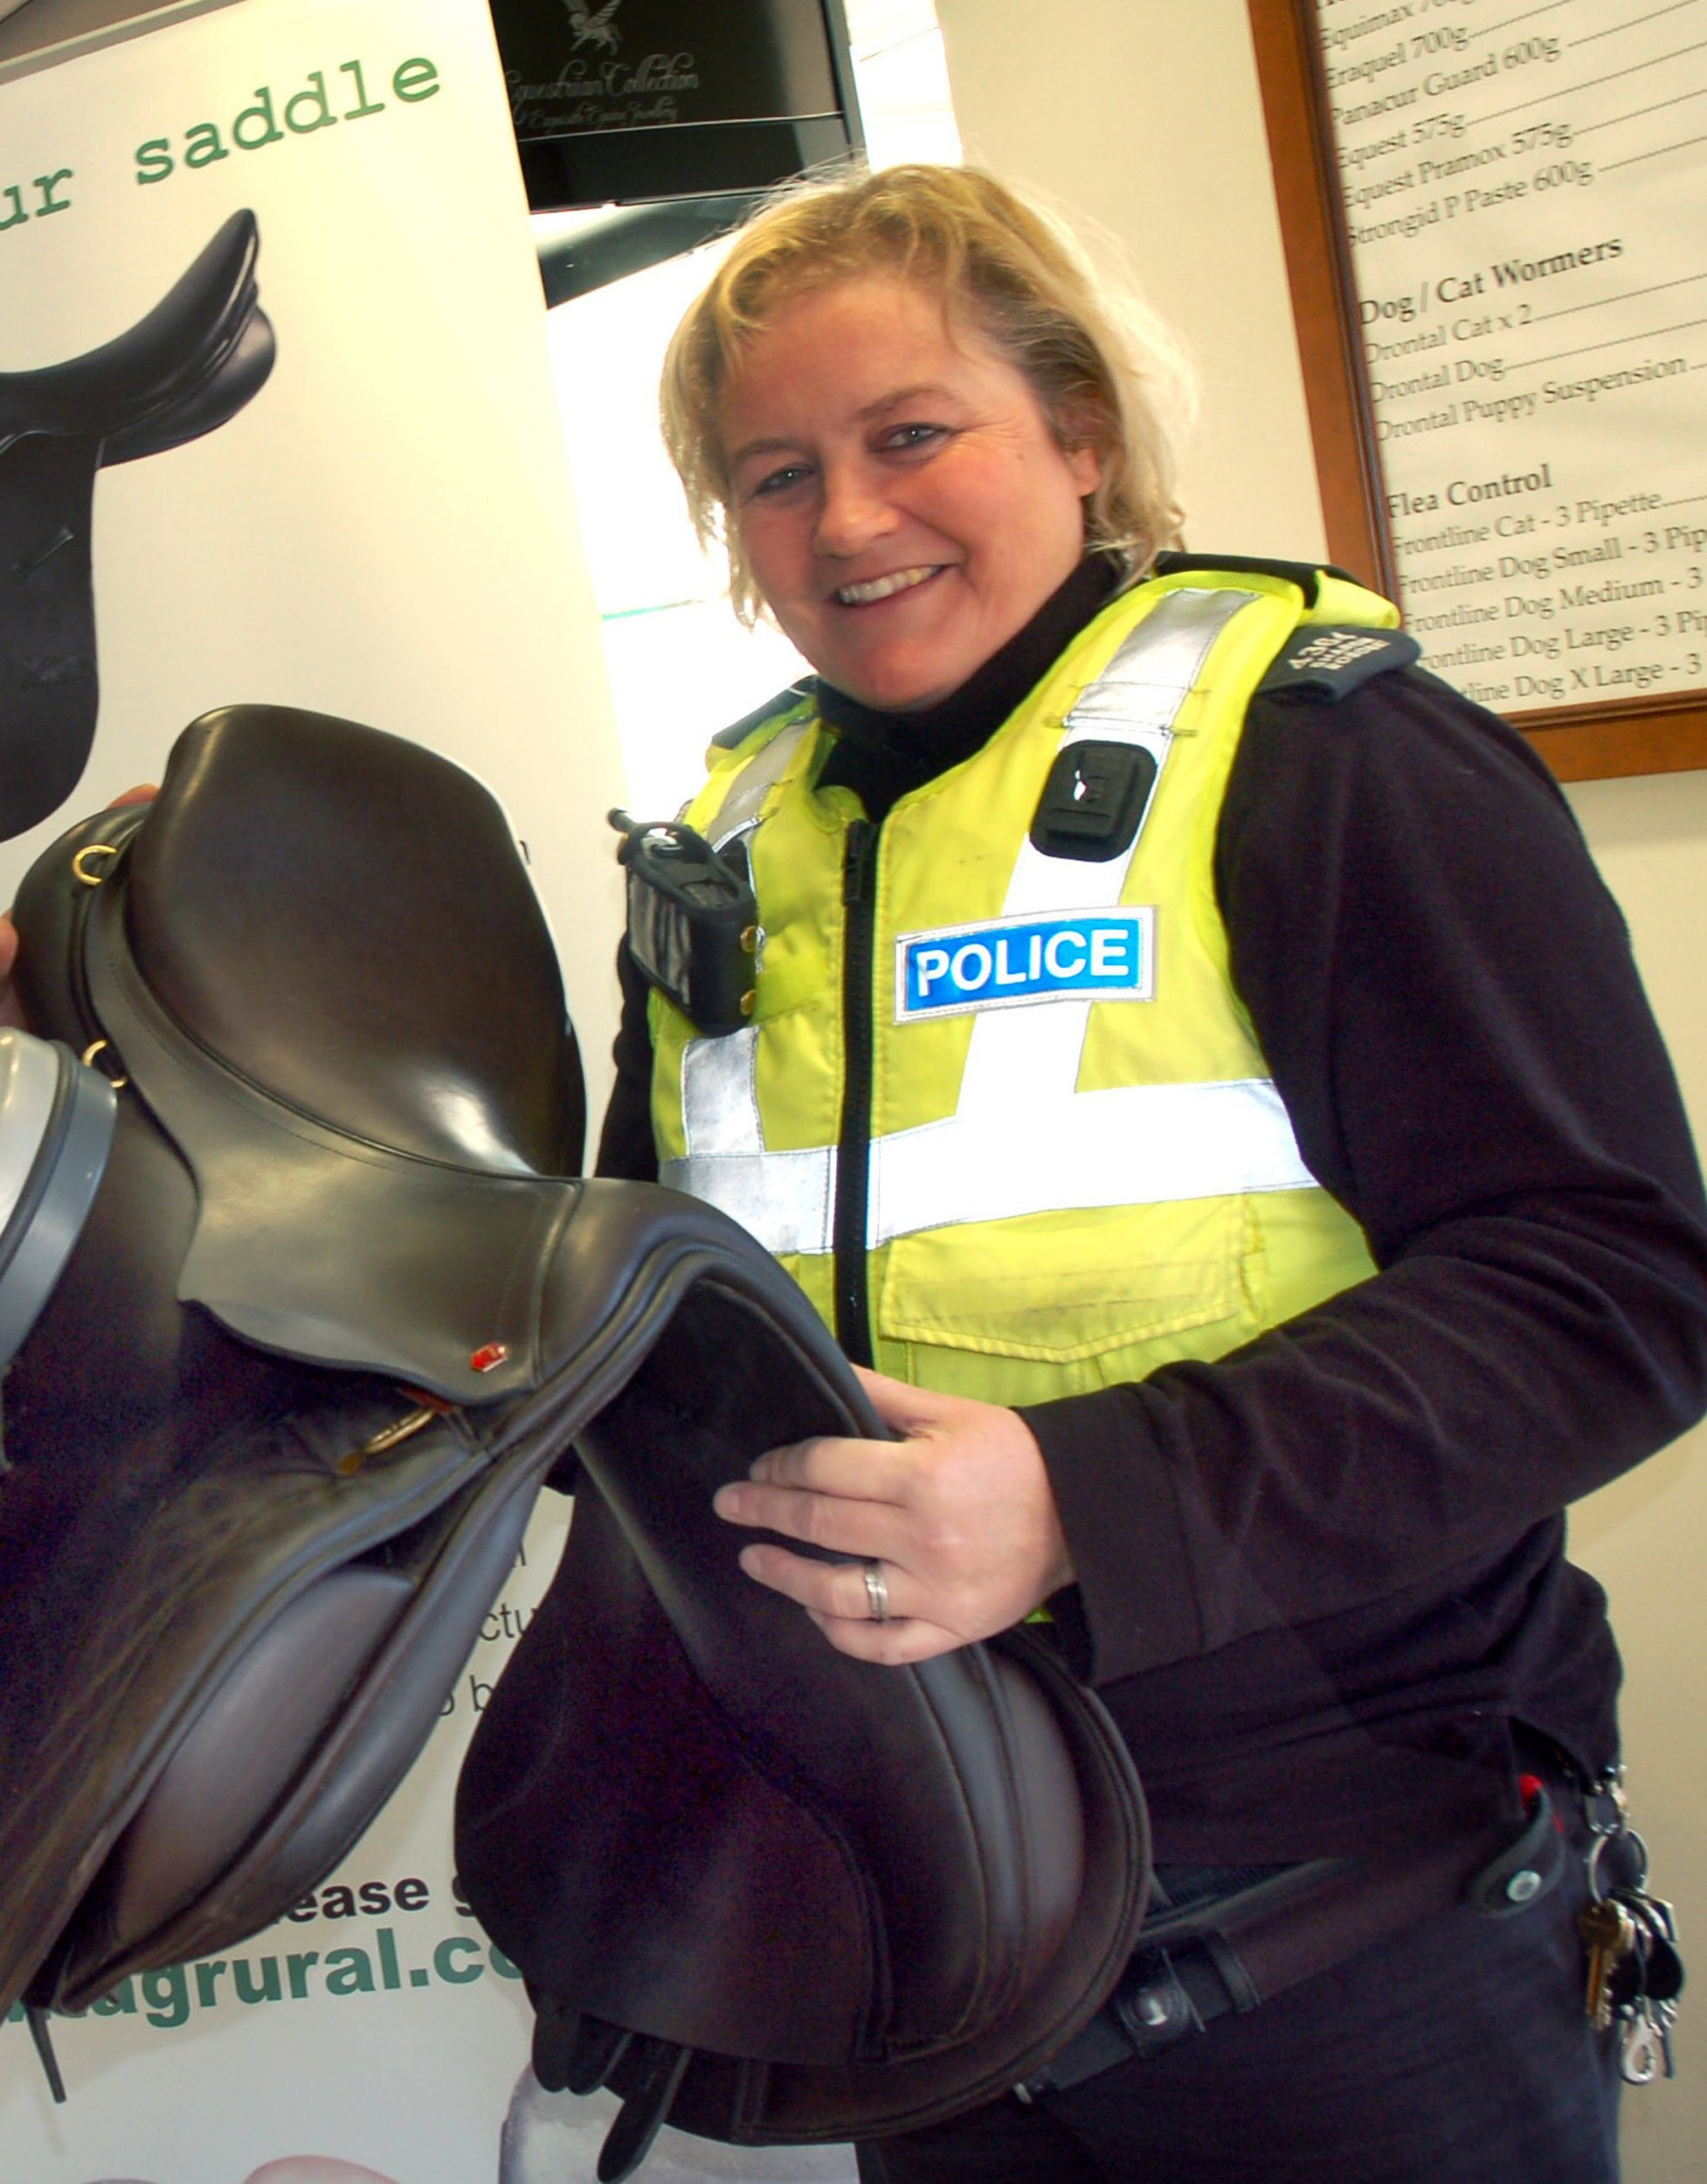 PC Sharon Roscoe. A female police officer has resigned from her role investigating animal abuse - after it emerged she regularly goes FOX HUNTING. See NTI story NTICOP. Pc Sharon Roscoe, 46, was a wildlife officer for Leicestershire Police - probing allegations of illegal fox hunting, trapping animals, game poaching and badger baiting. But she faced an angry backlash after it was discovered she was also a keen member of the Duke of Rutland's Belvoir Hunt in Lincolnshire. The Hunt Saboteurs Association launched a petition calling for her to be removed from the post, which gained signatures from over 6,000 people.